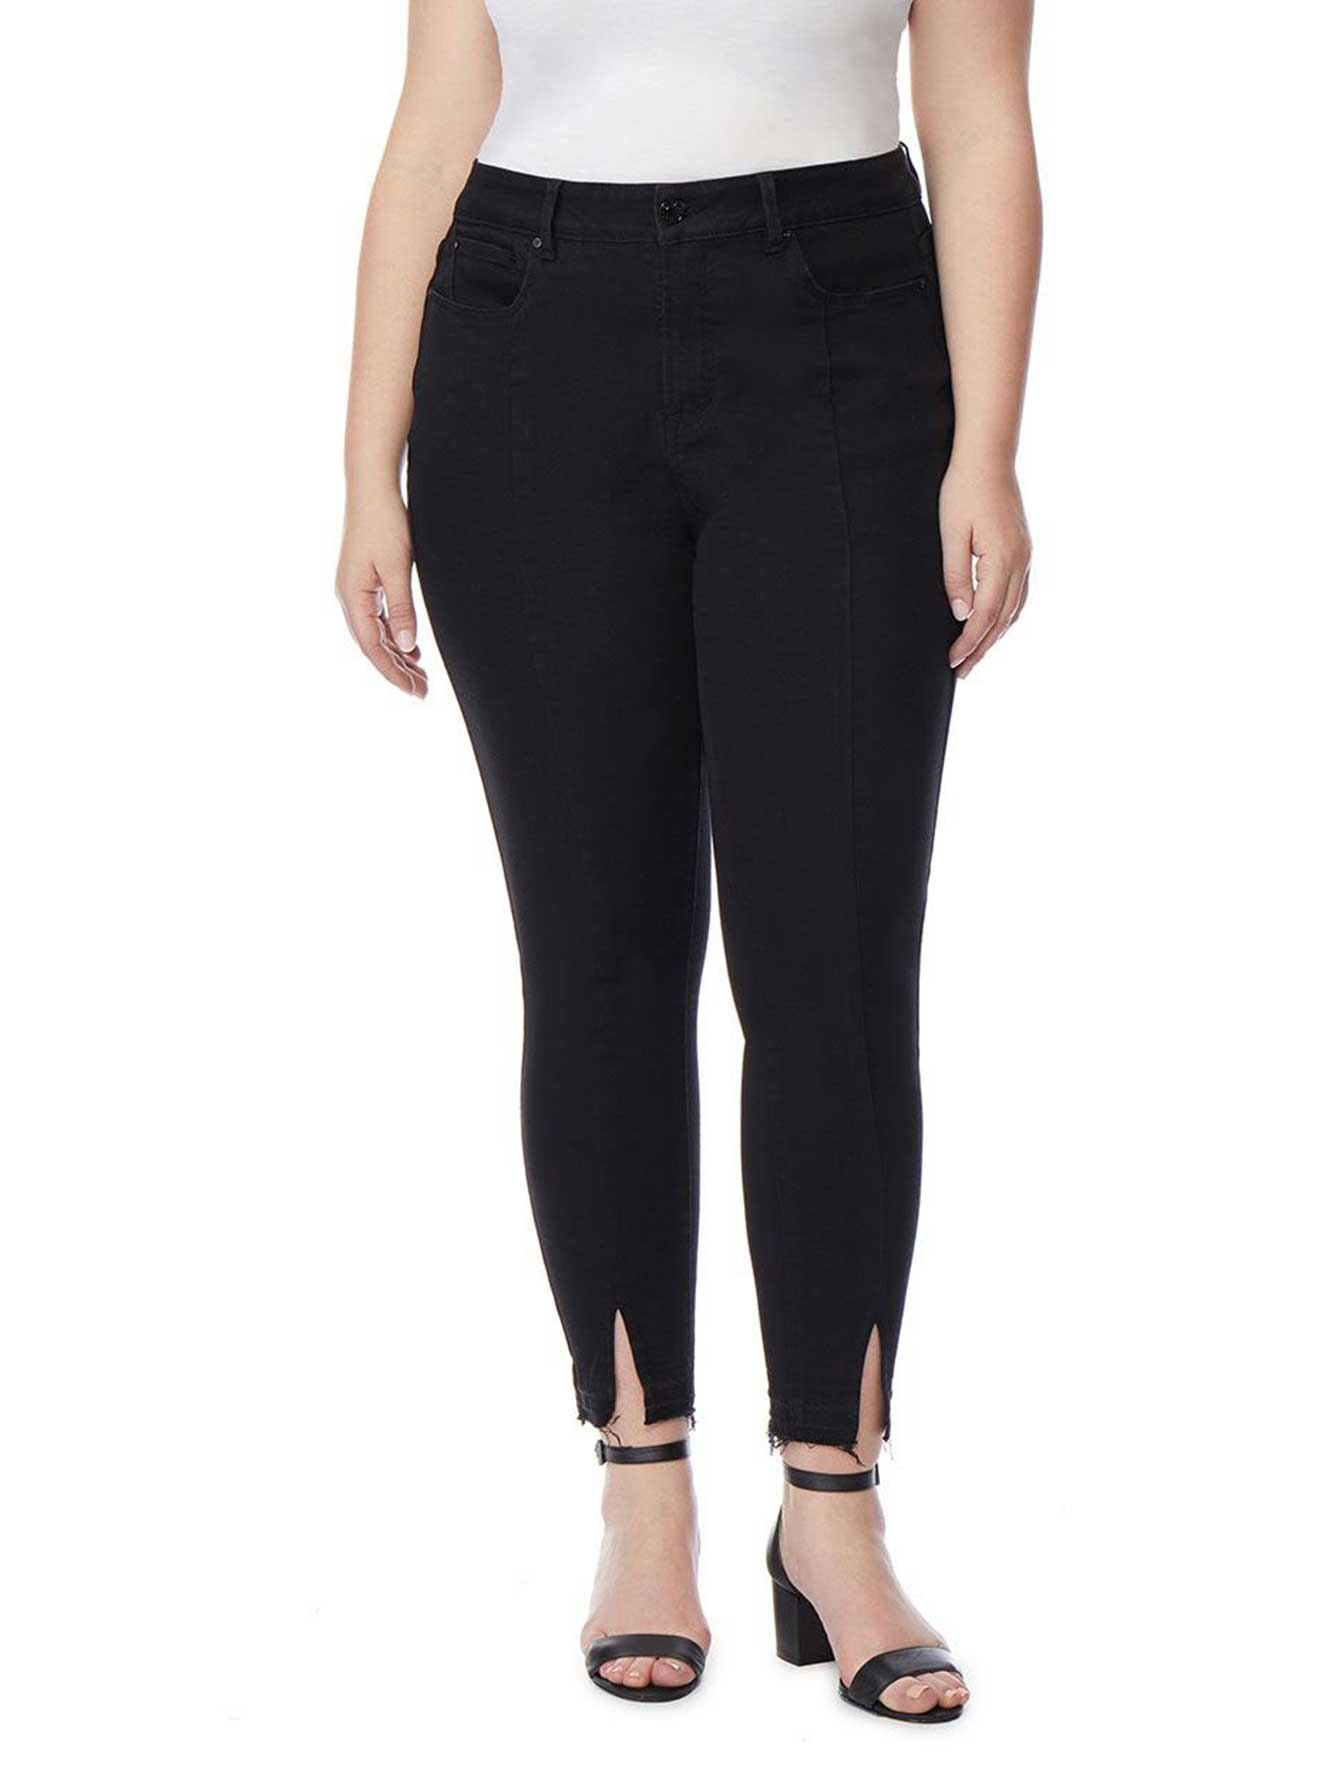 Imperial Ankle Jean with Front Slit - Rebel Wilson x Angels